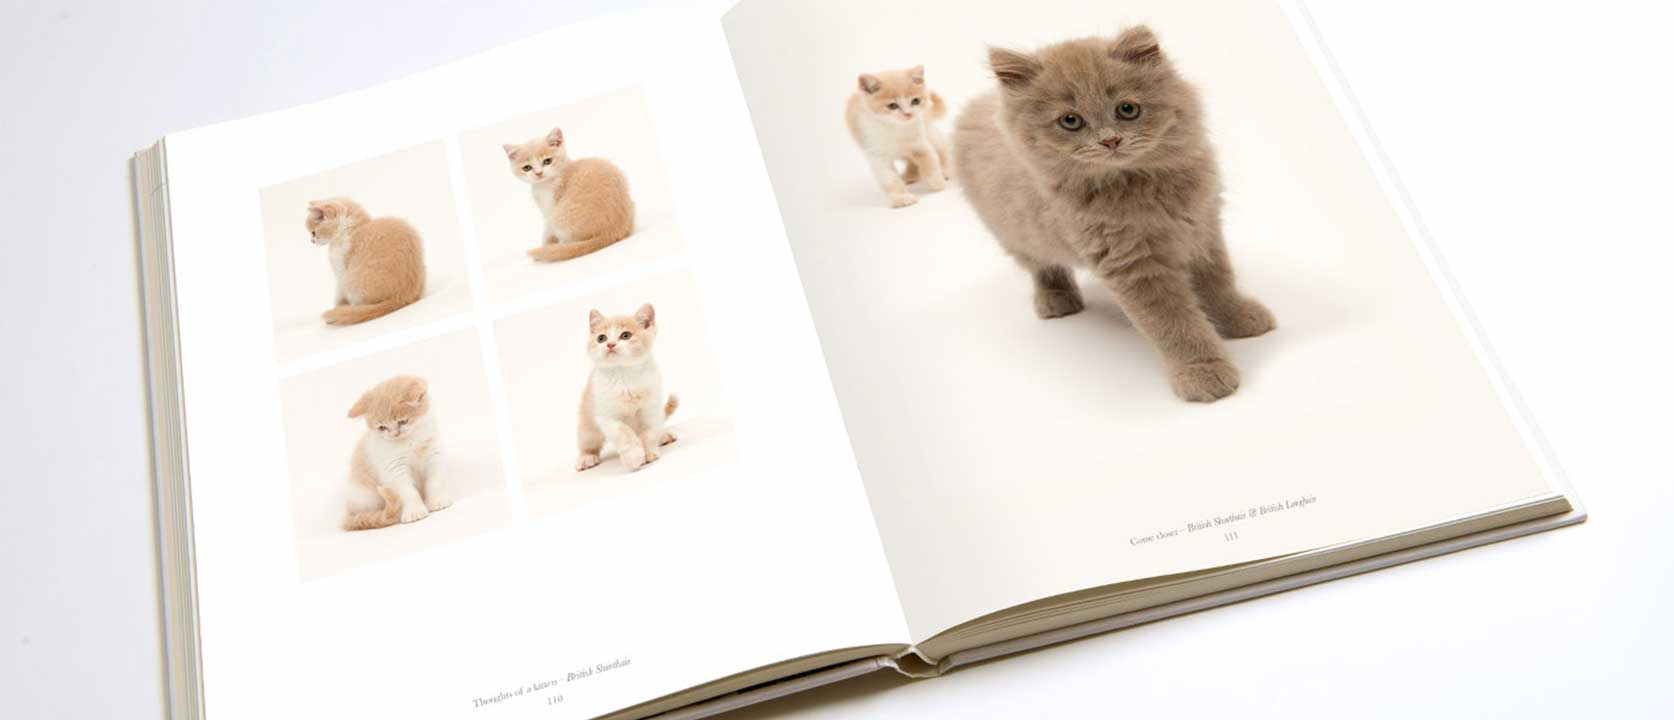 A page inside the Pure cat portrait book